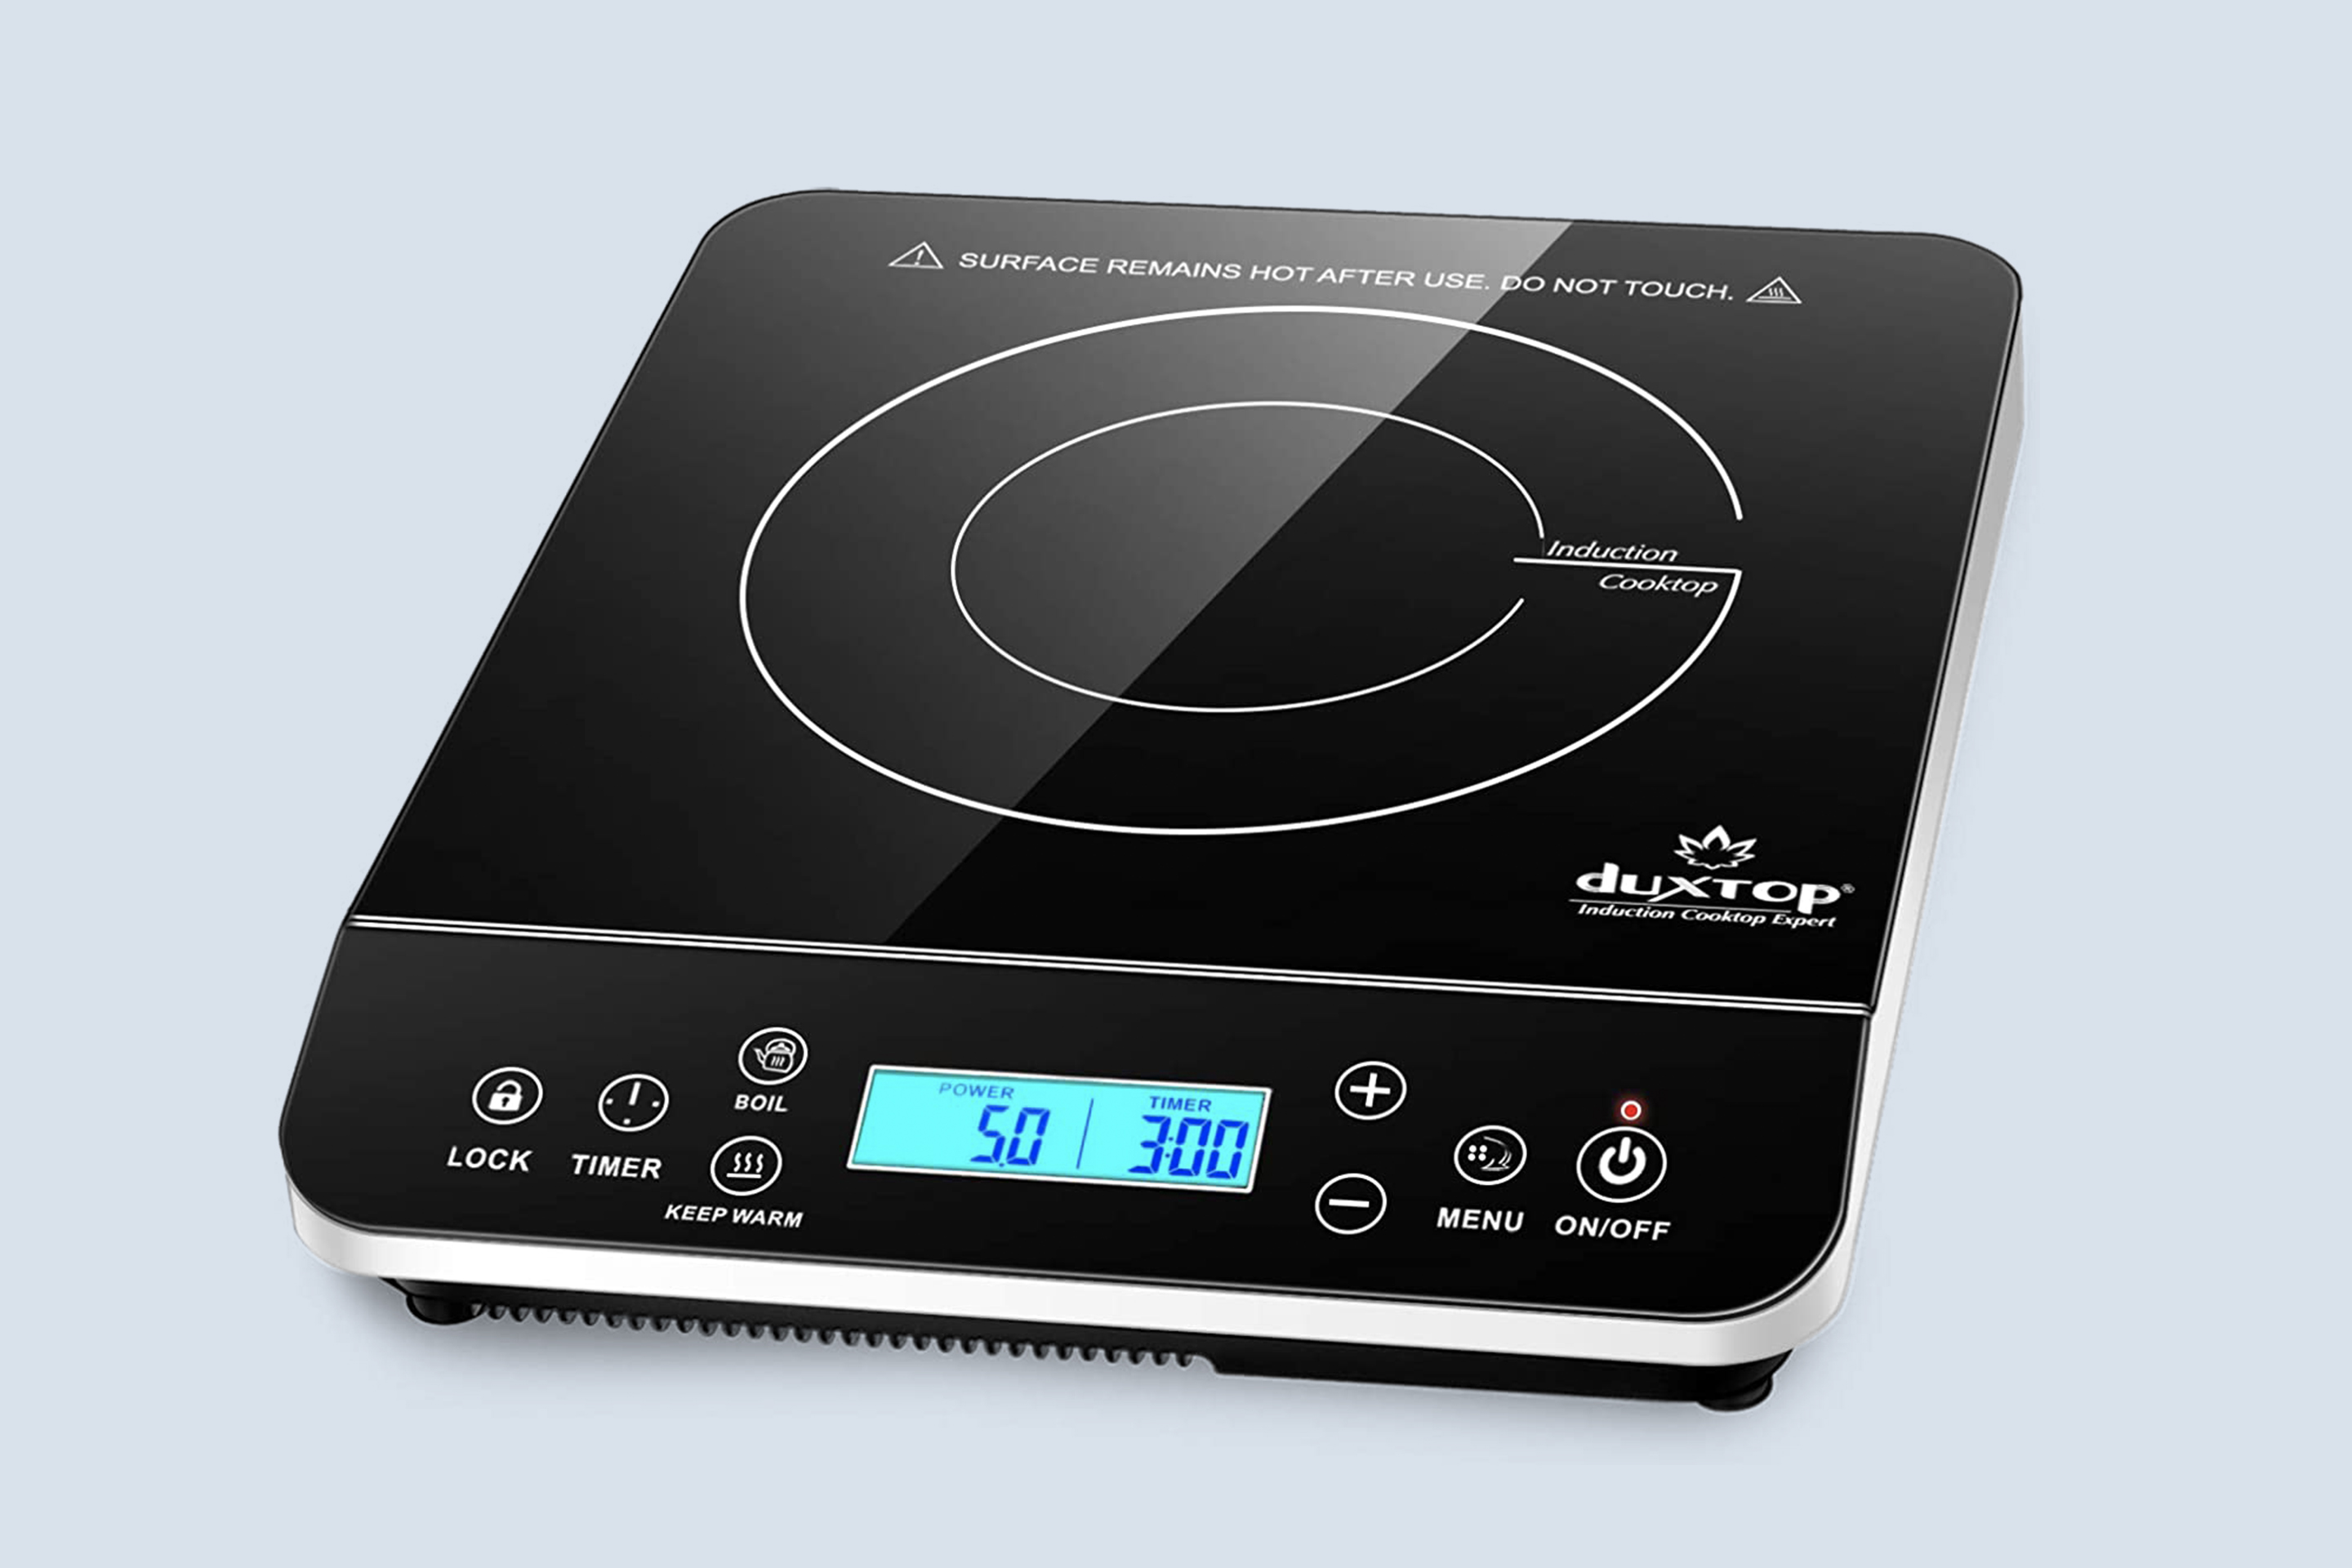 Duxtop 9600LS Induction Hot Plate